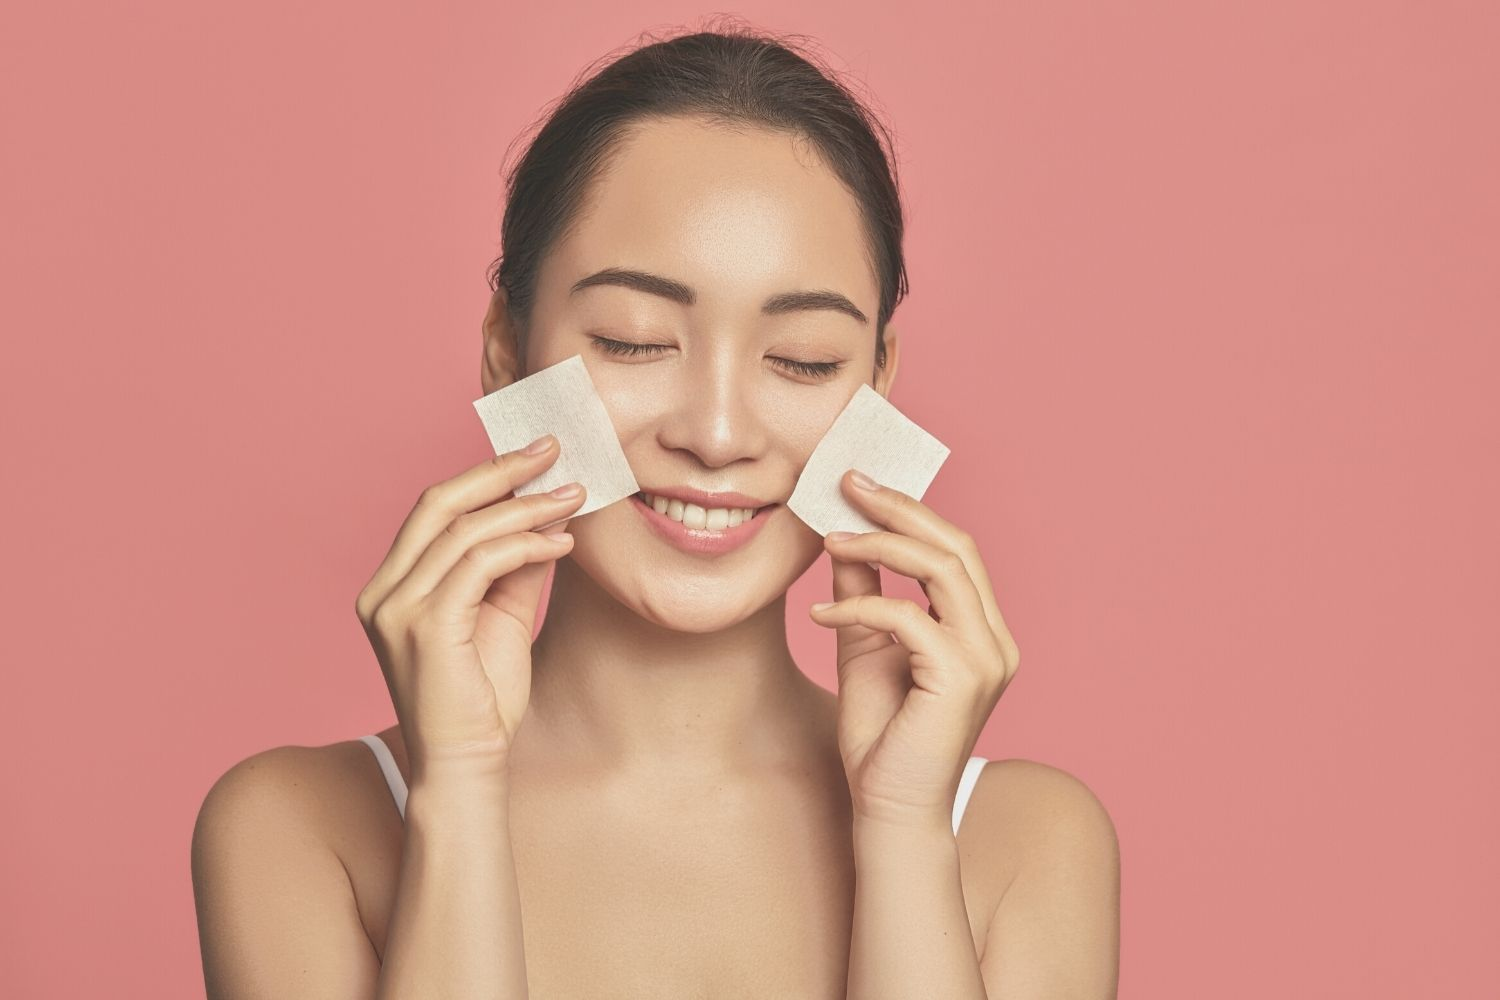 5 Tips to Mattify Your Skin This Summer